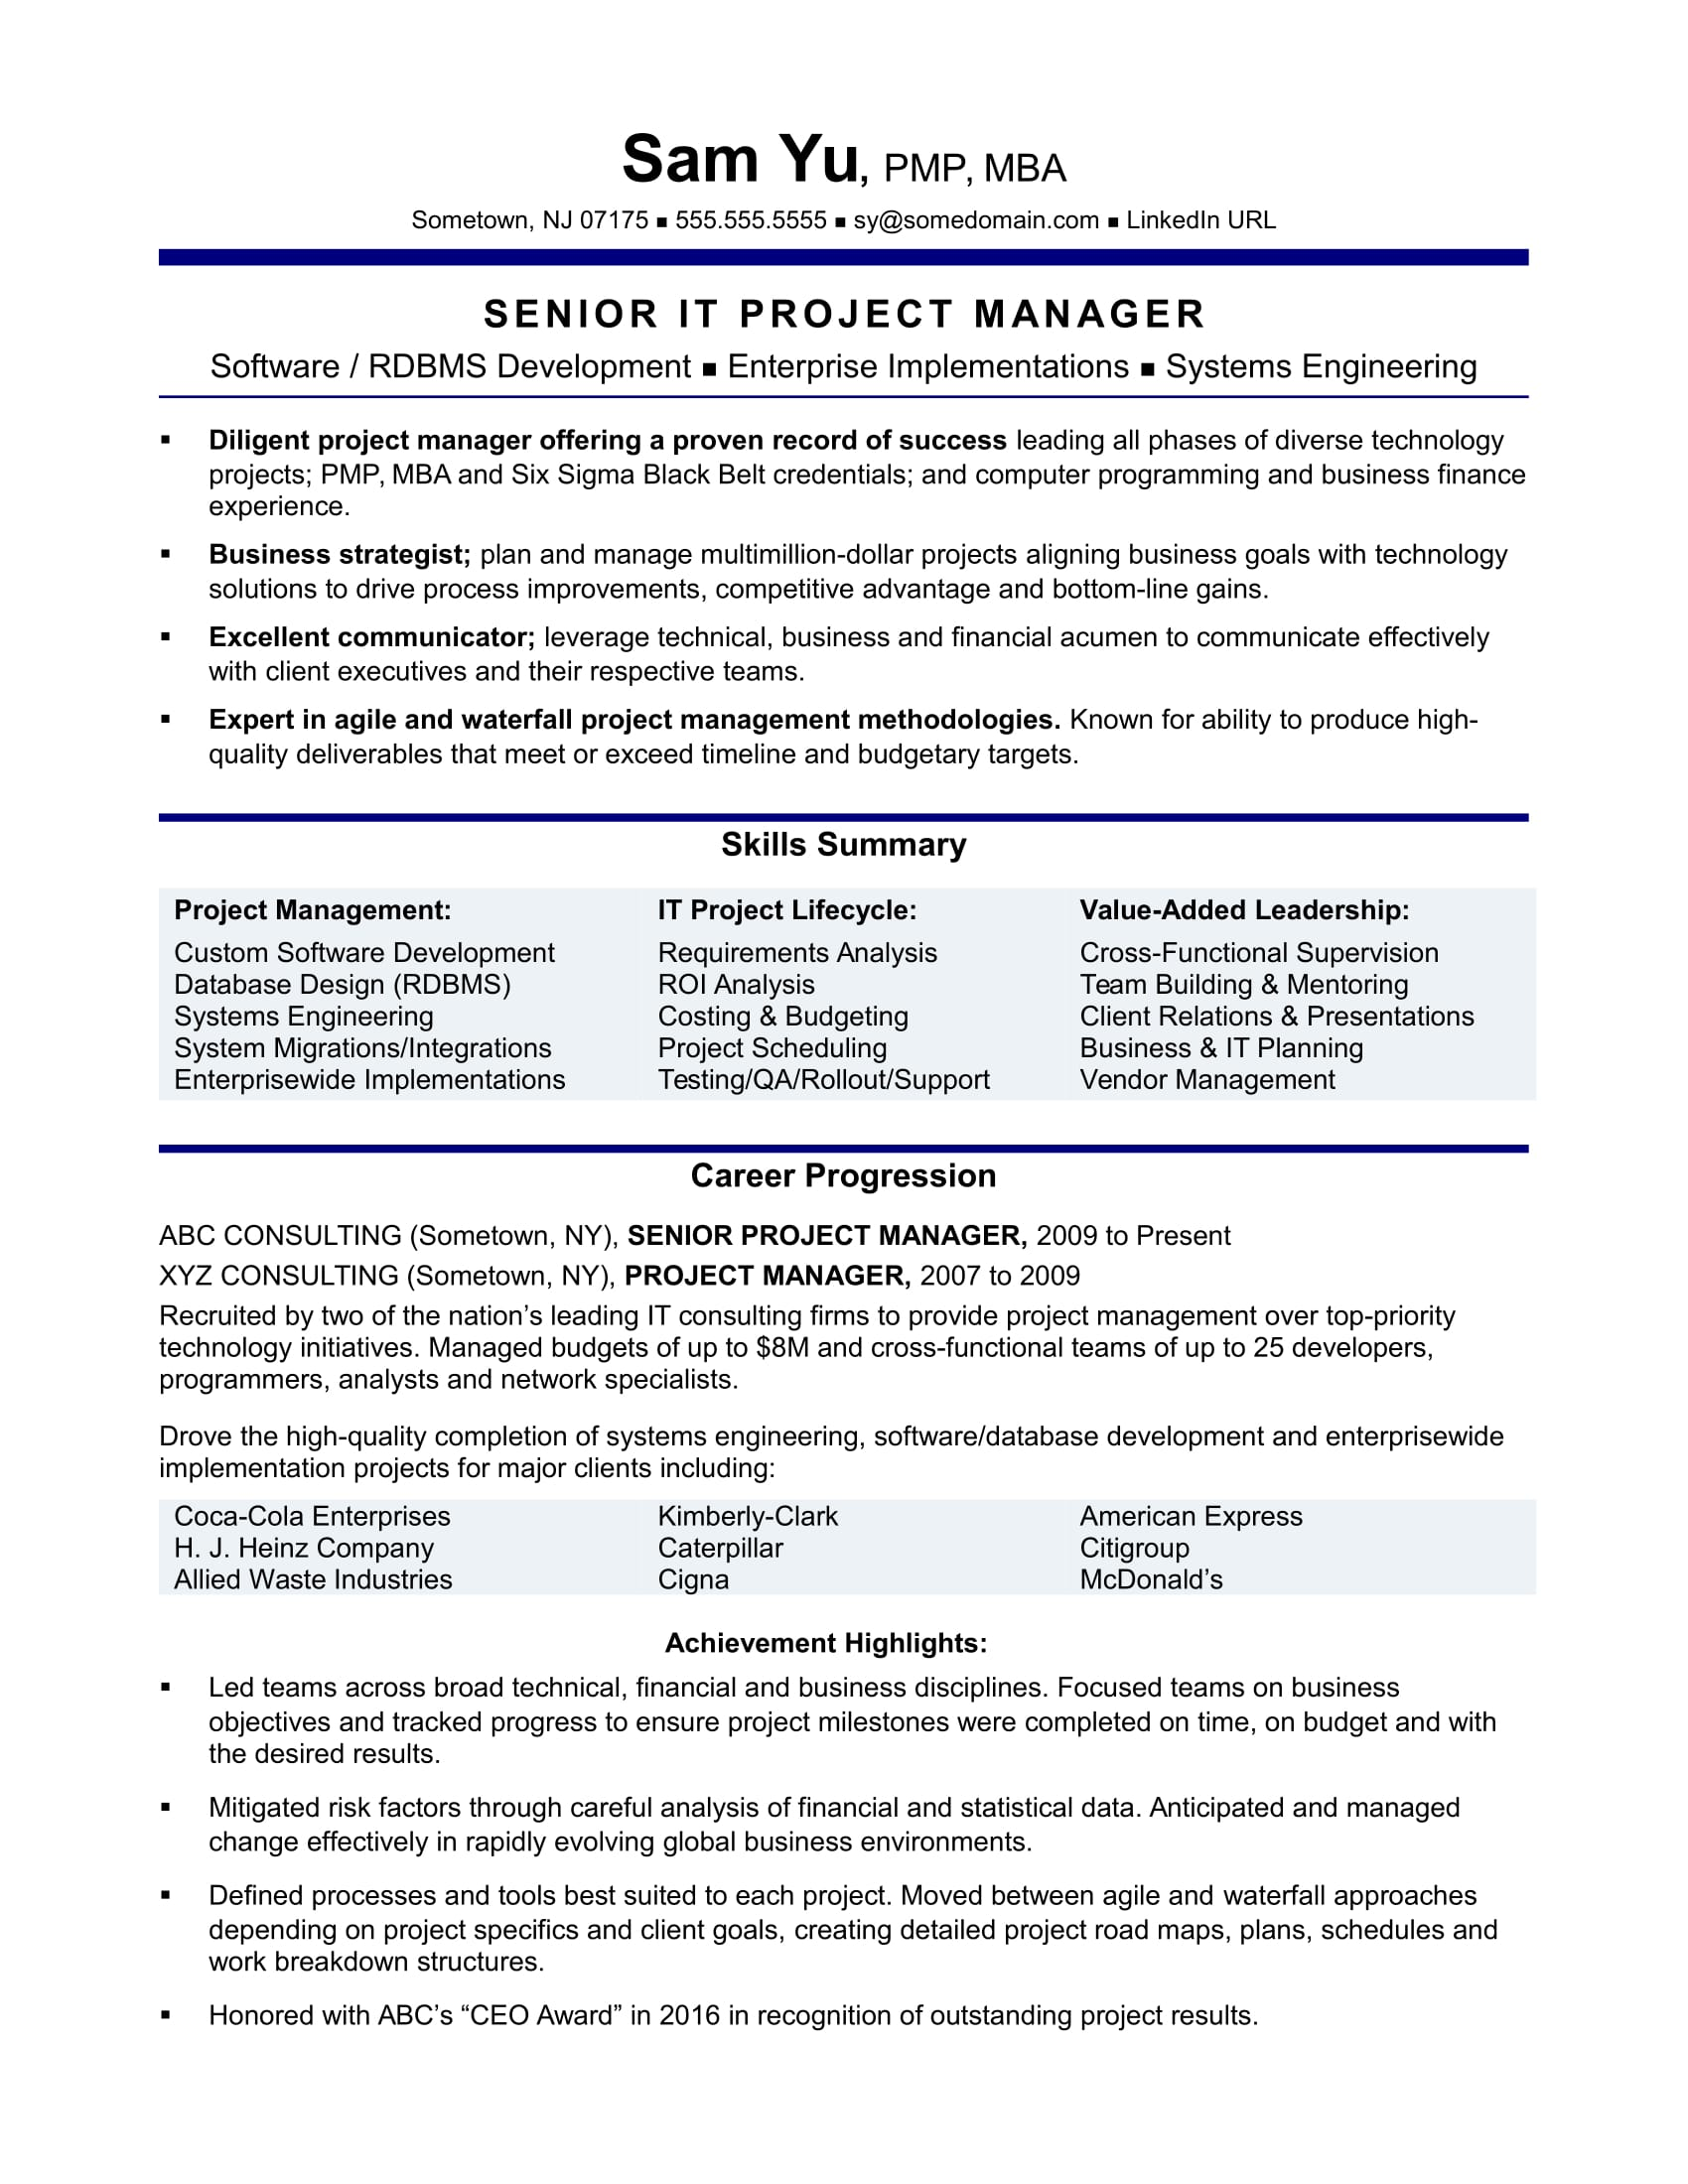 Experienced it project manager resume sample monster experienced it project manager resume sample yelopaper Choice Image